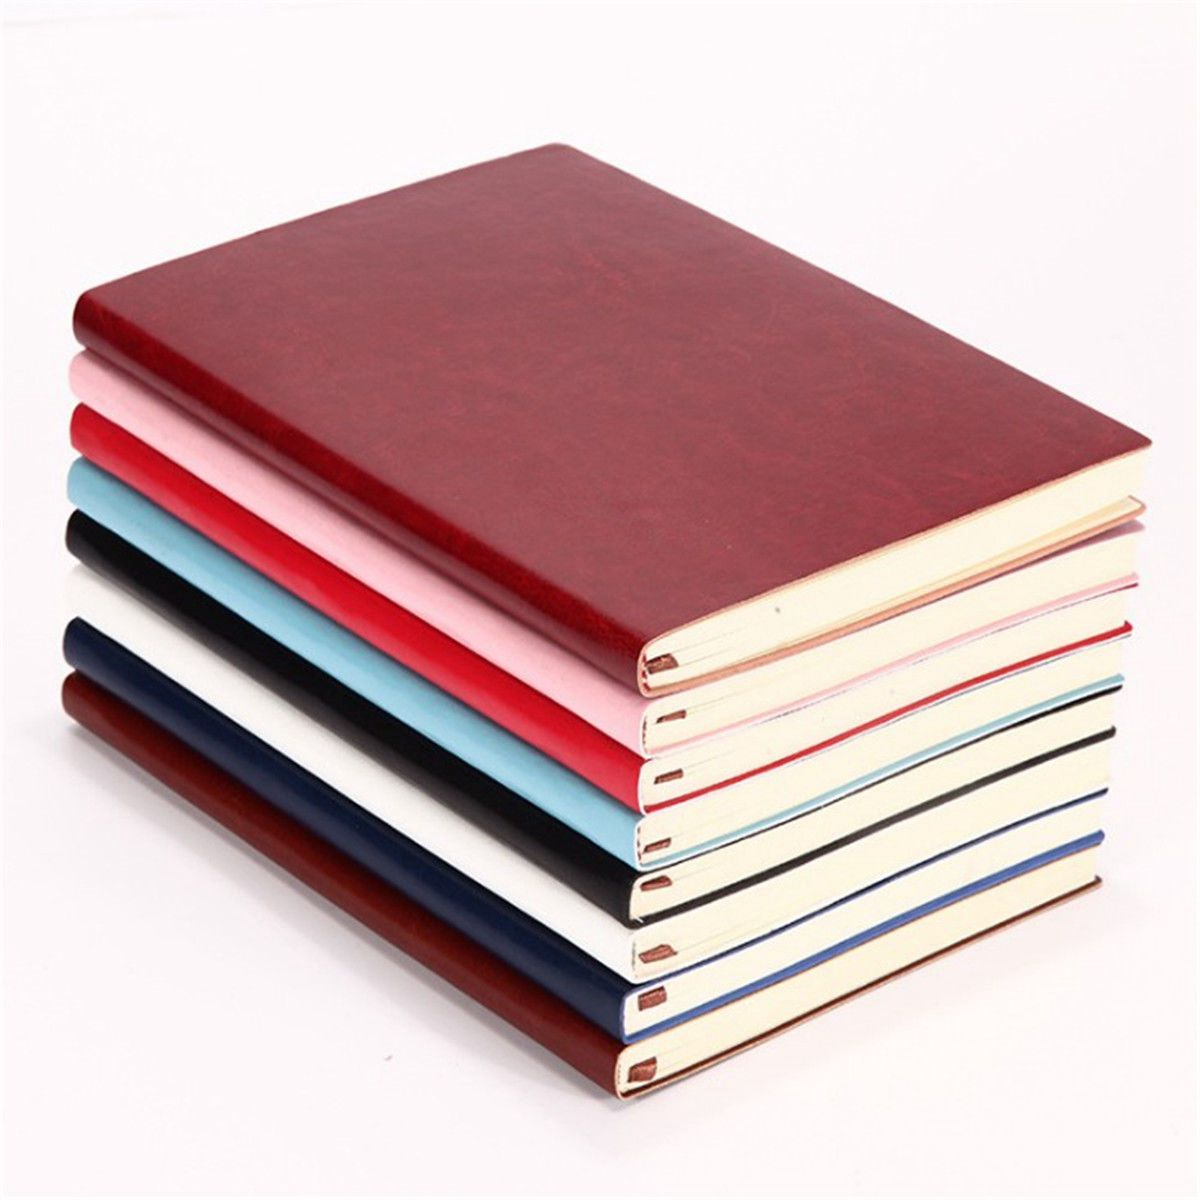 6 Color Random Soft Cover PU Leather Notebook Writing Journal 100 Page Lined Diary Book laulu page 6 page 6